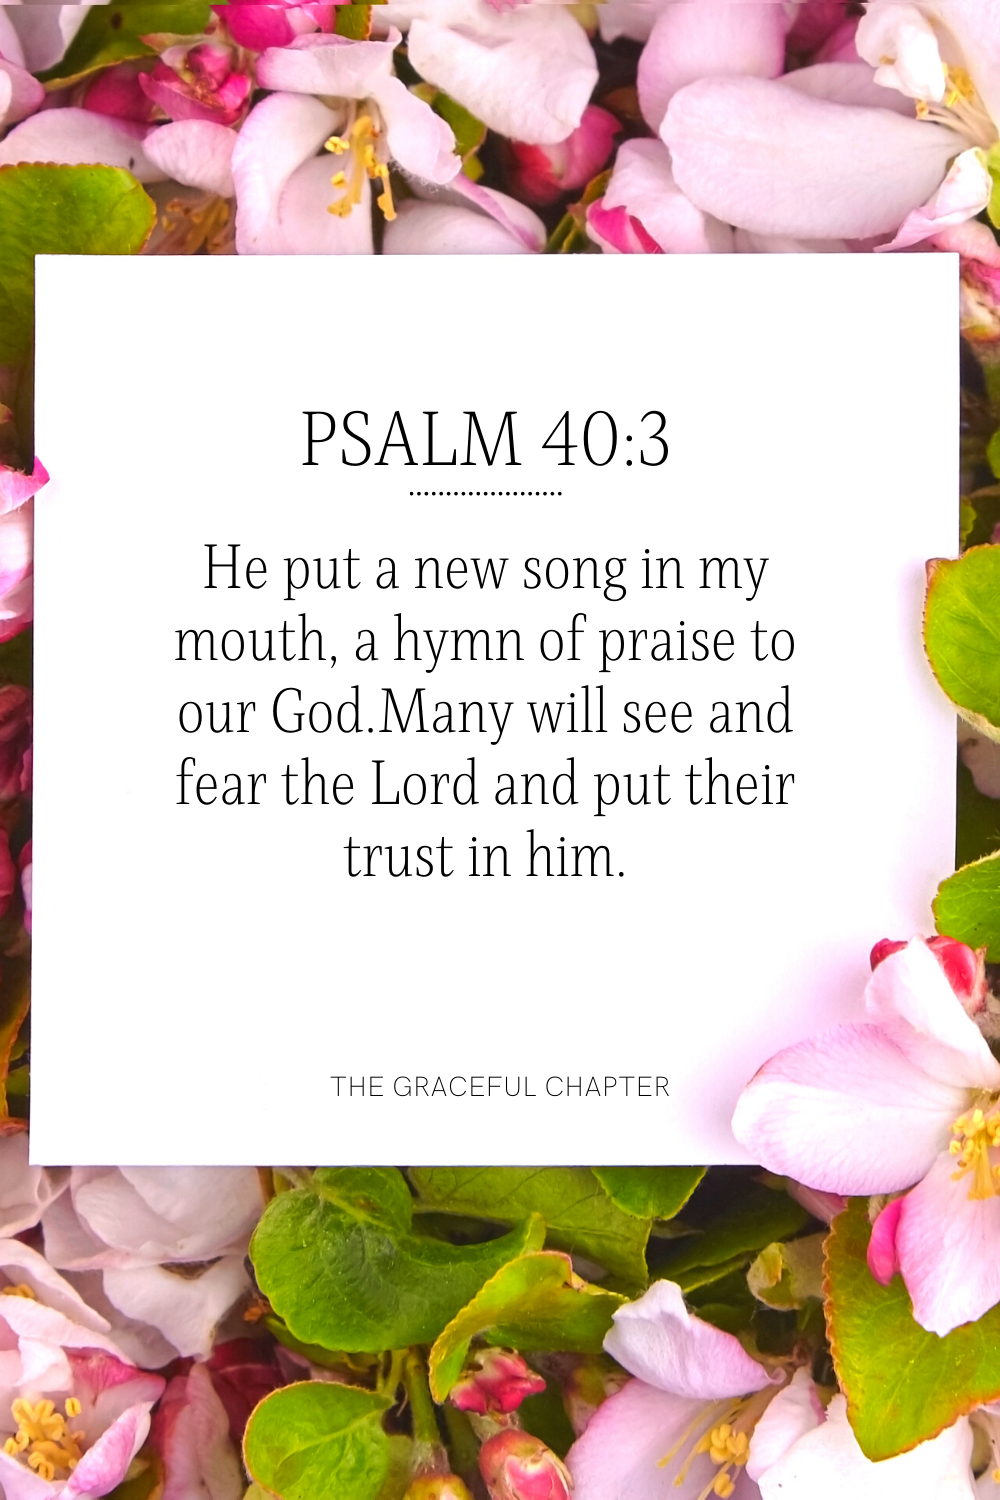 He put a new song in my mouth, a hymn of praise to our God. Many will see and fear the Lord and put their trust in him.